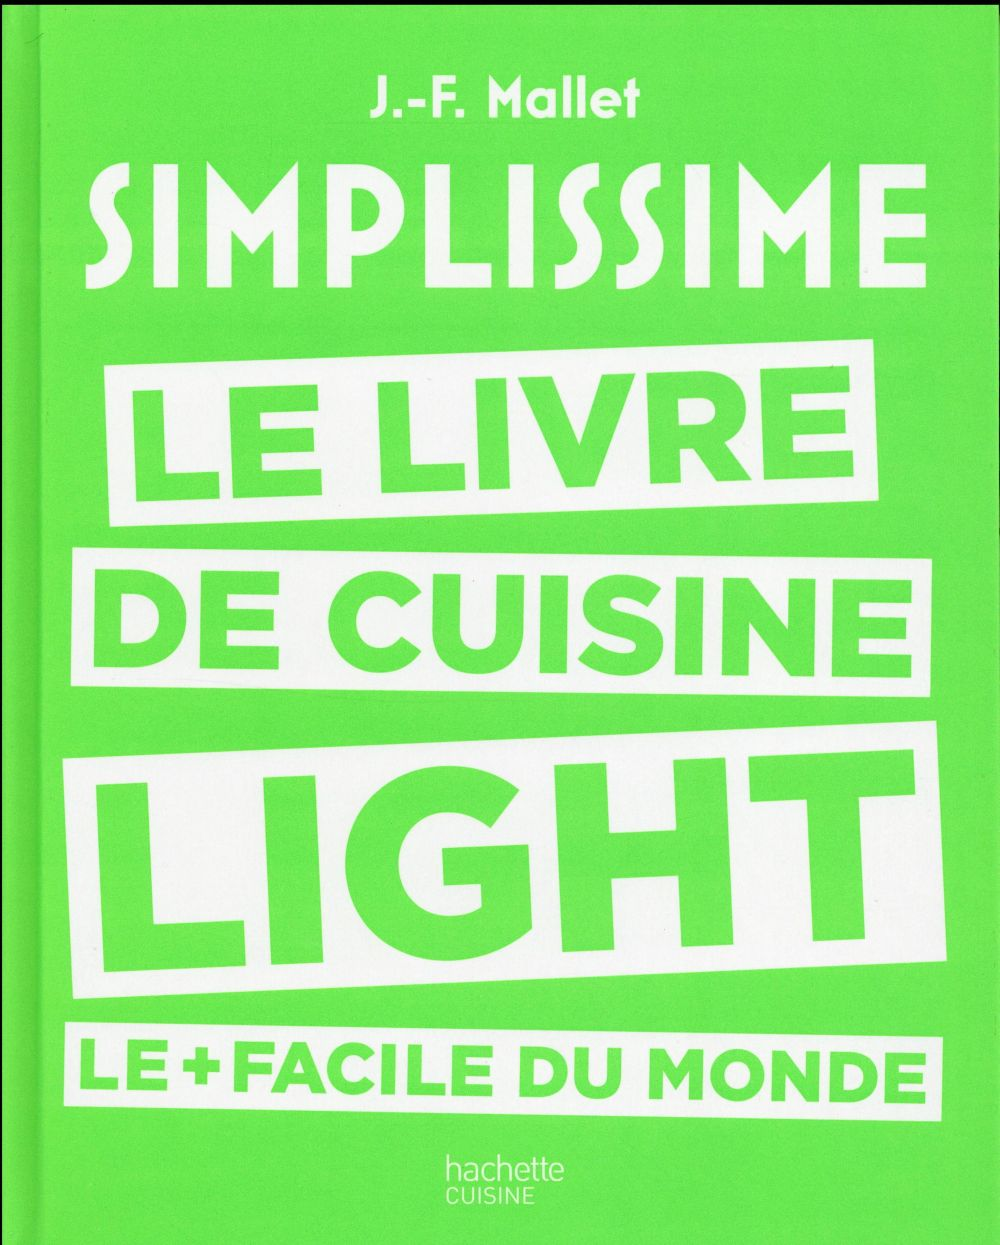 Simplissime light ; le livre de cuisine light le + facile du monde